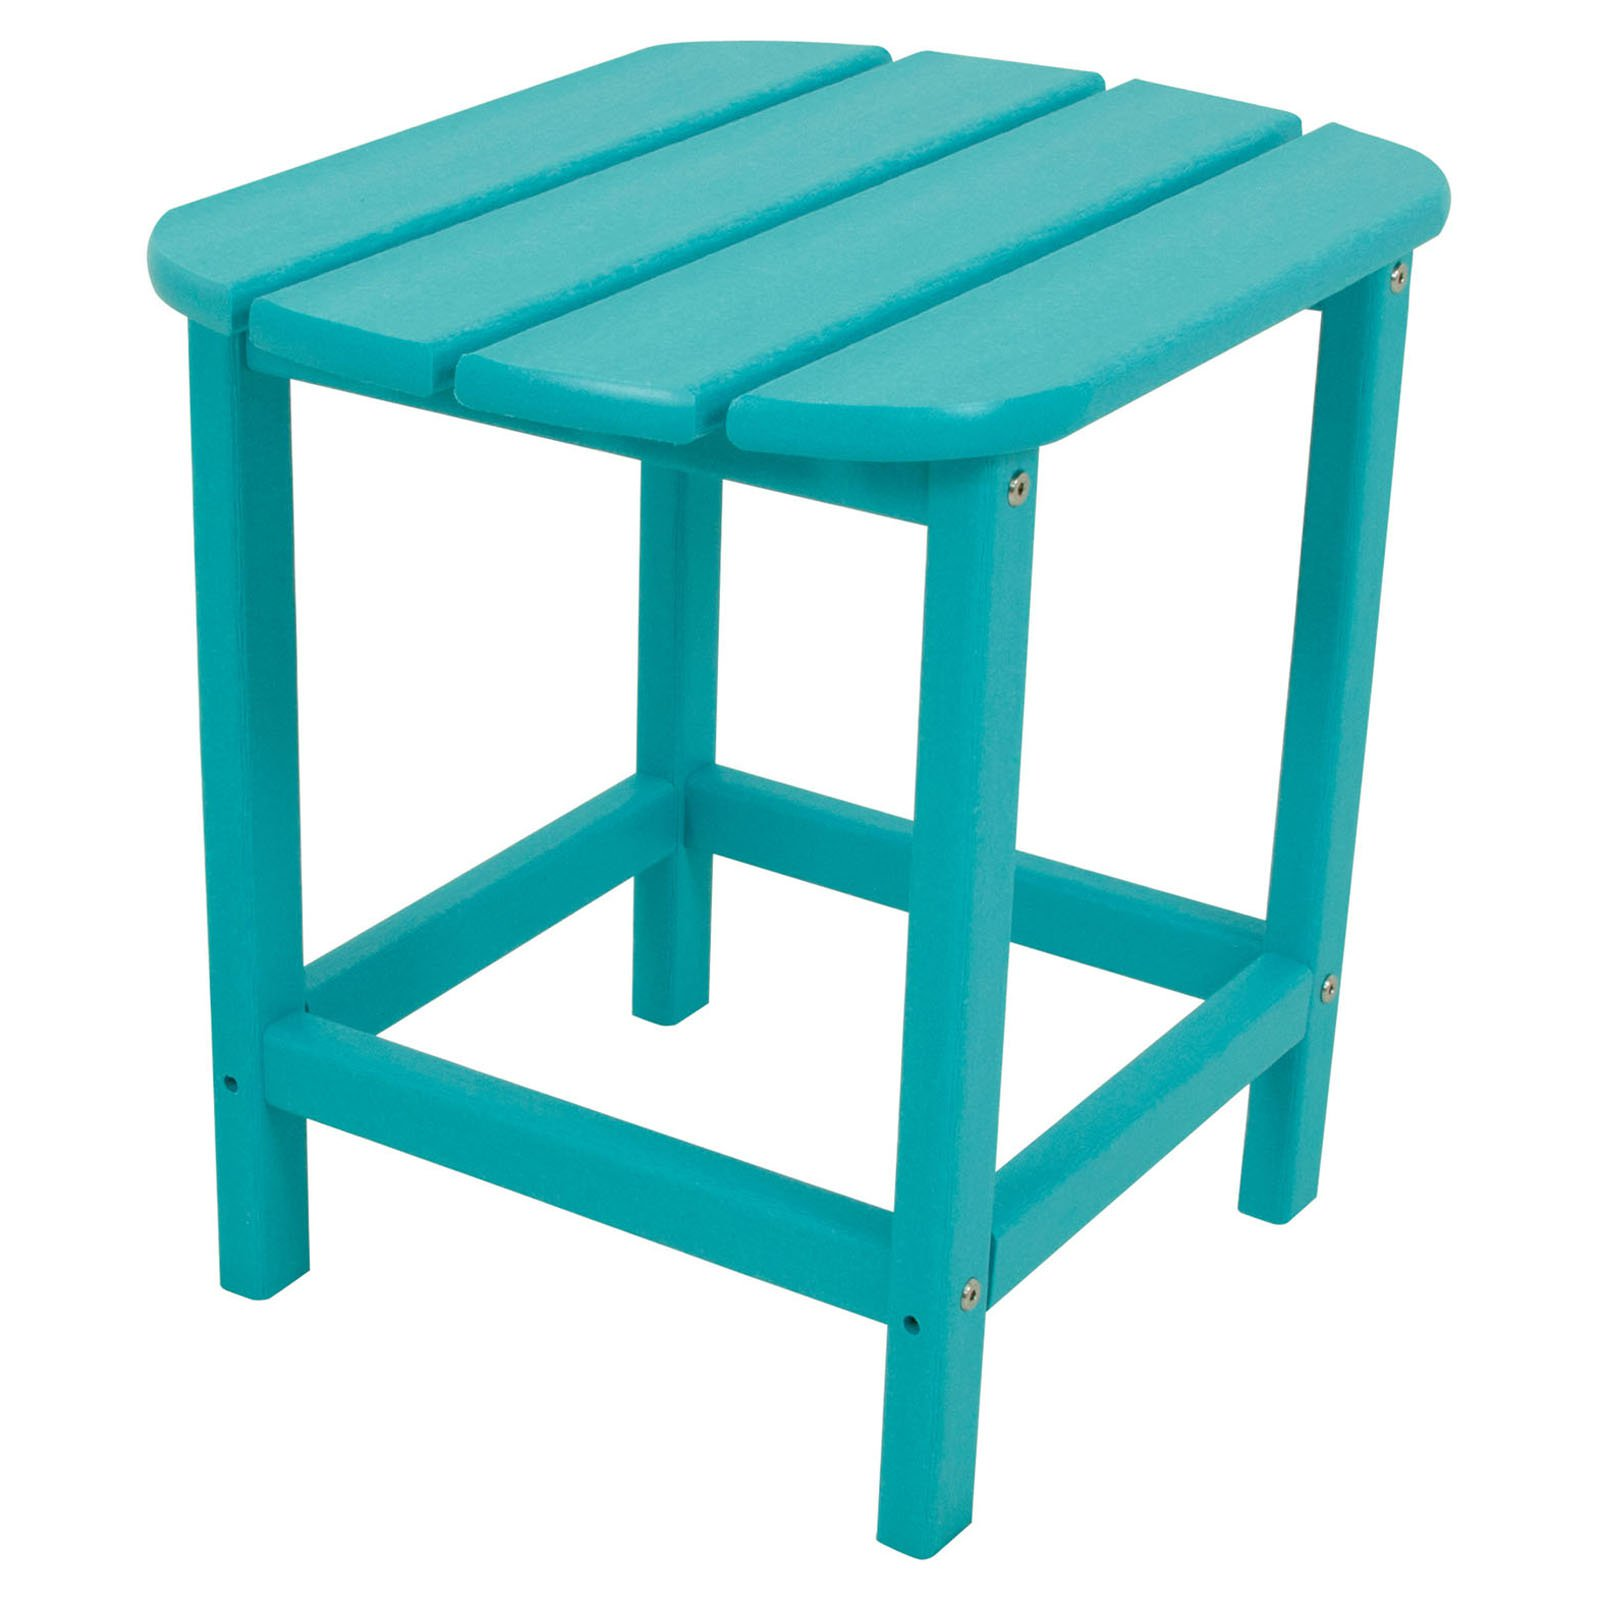 Hanover Outdoor All-Weather Side Table